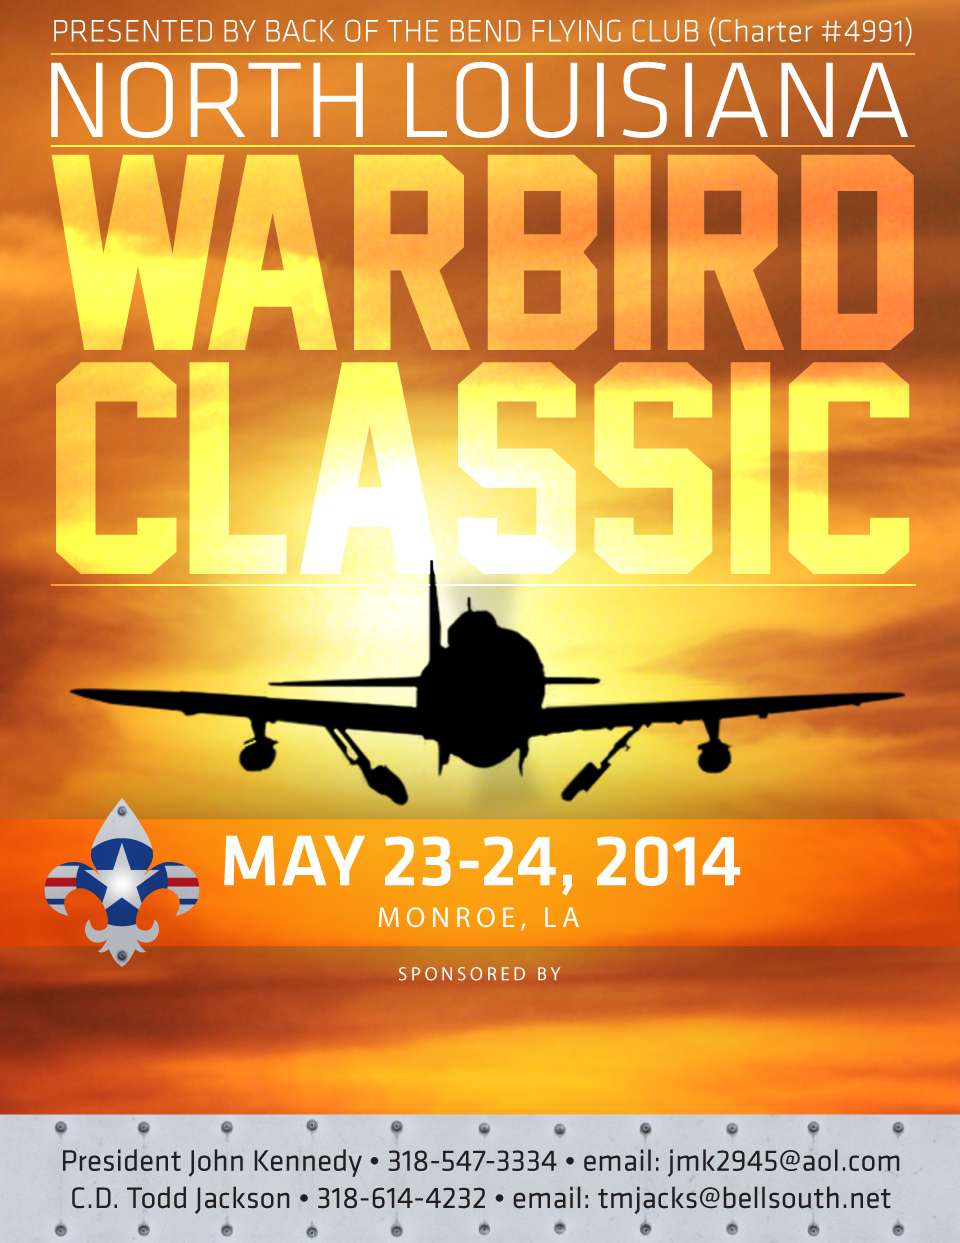 Click image for larger version  Name:warbird flyer 001.jpg Views:73 Size:638.2 KB ID:1948937